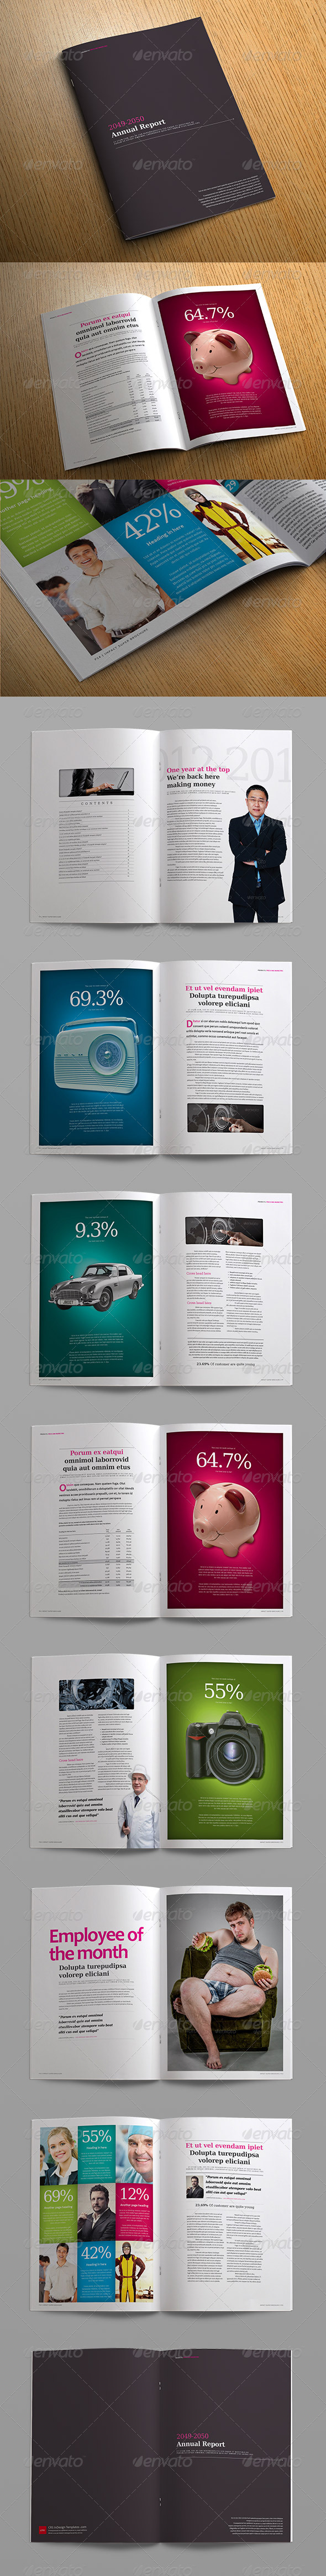 Impact Annual Report/Corporate Brochure - Corporate Brochures